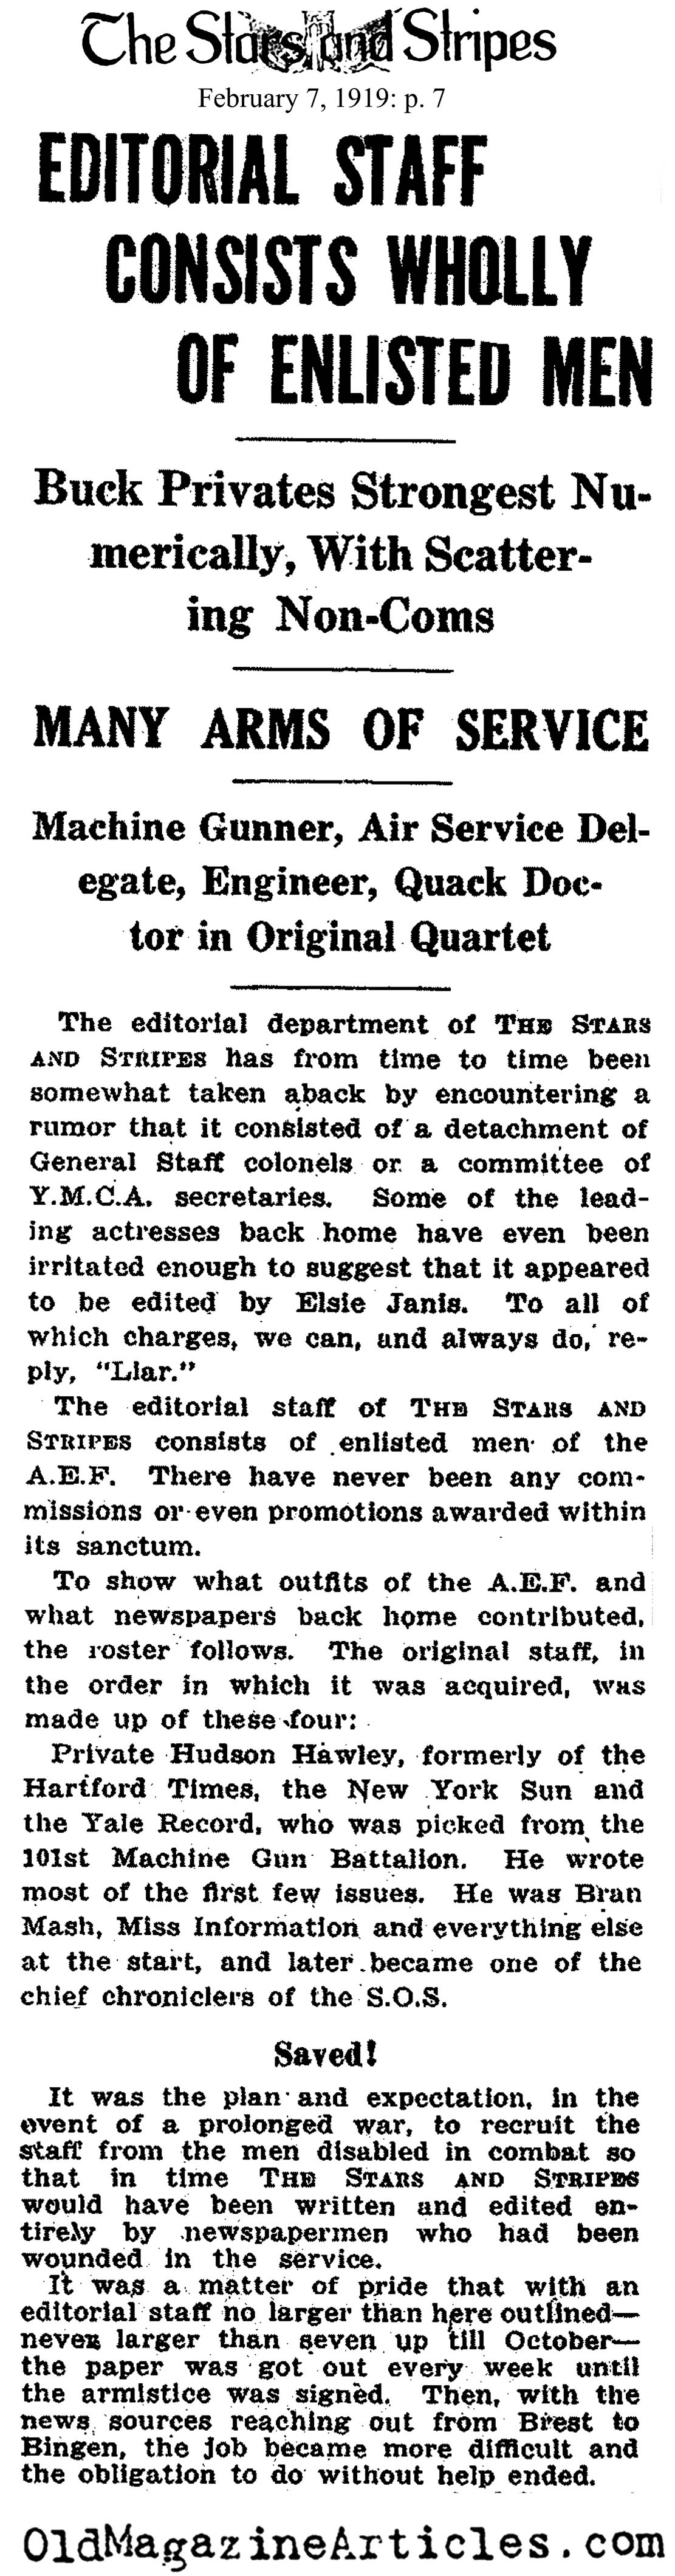 How the 'Stars & Stripes' Operated  (The Stars and Stripes, 1919)